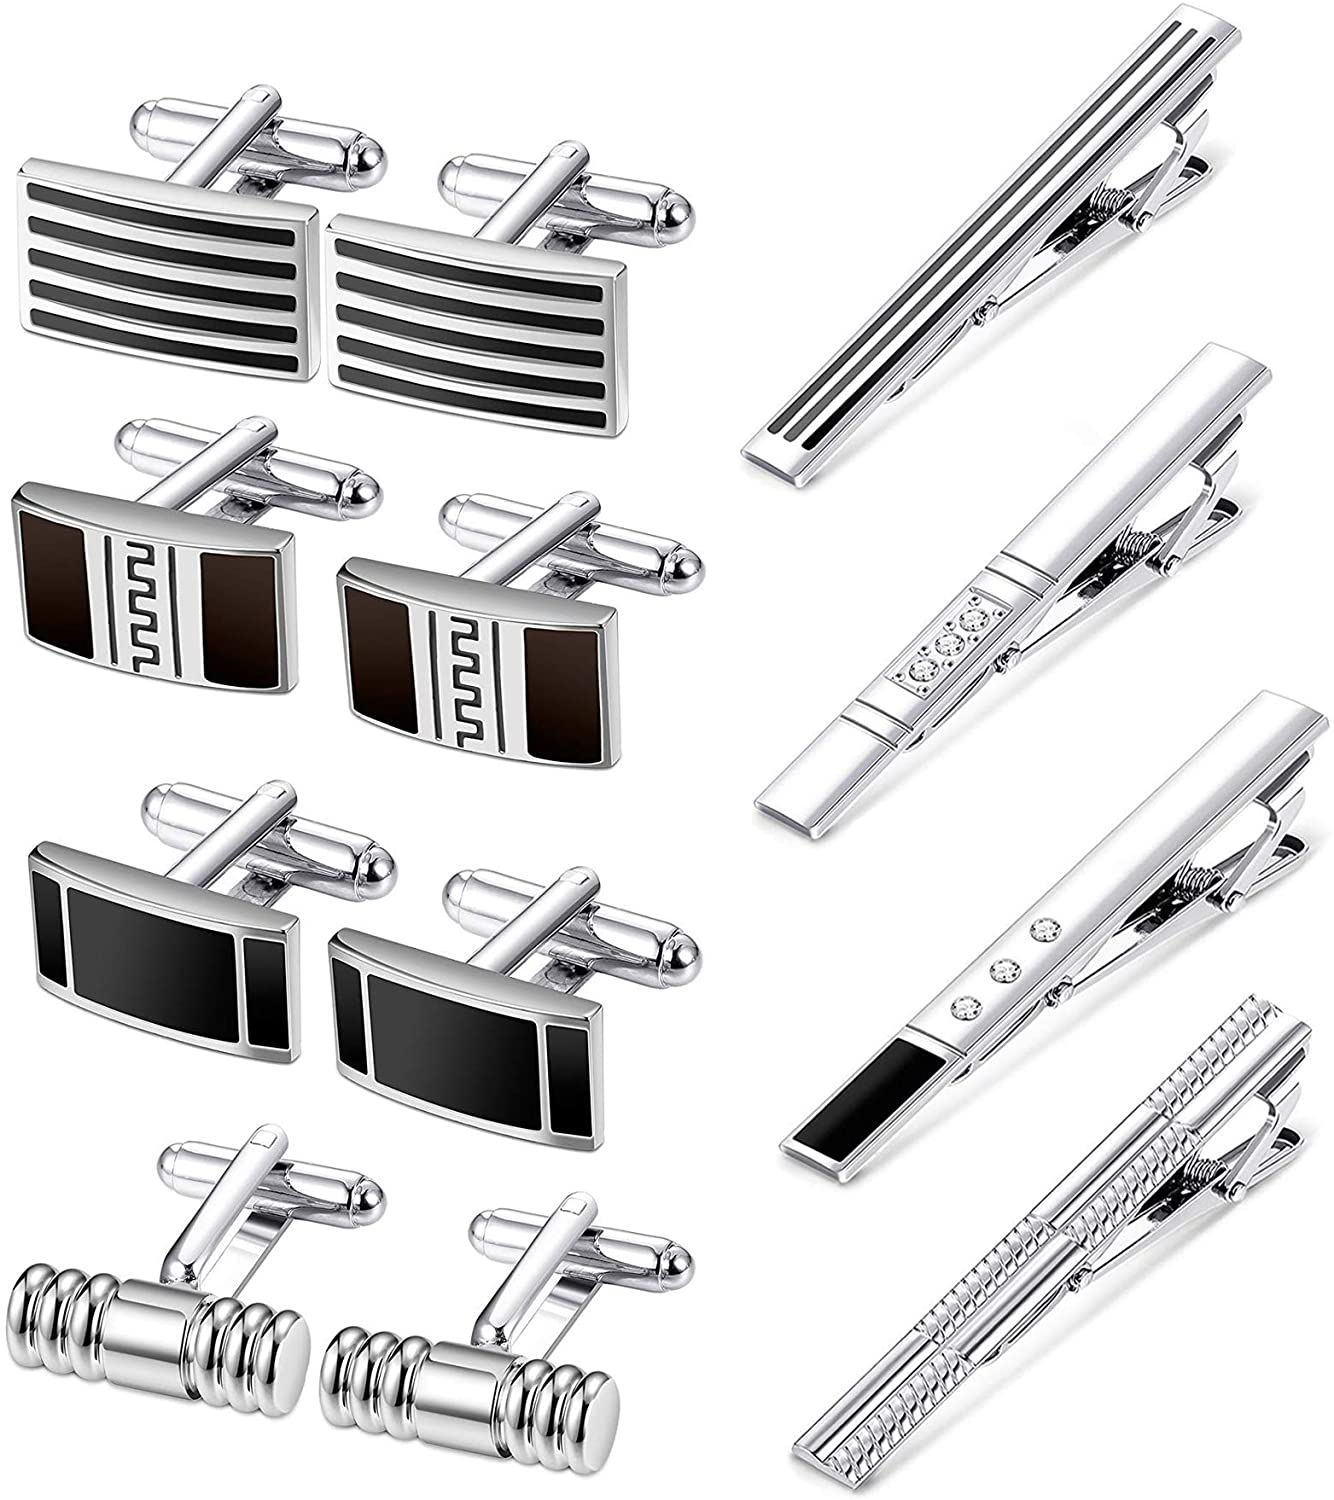 CASSIECA Cufflink and Tie Clip Set for Men Tie Bar Clips with Gift Box for Shirt Wedding Business